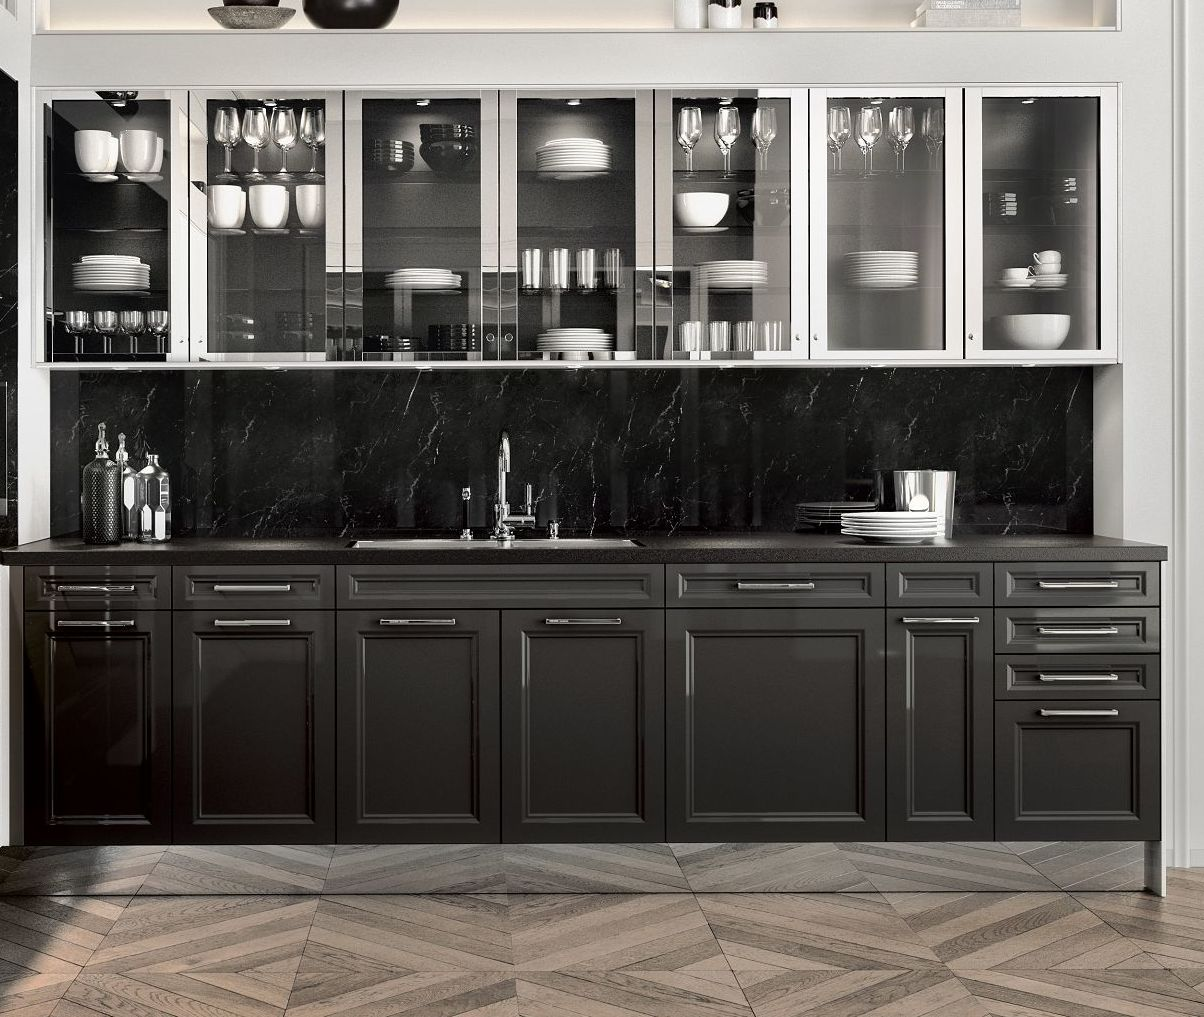 SieMatic Classic BeauxArts SE base cabinets in graphite grey and glass wall cabinets in polished nickel